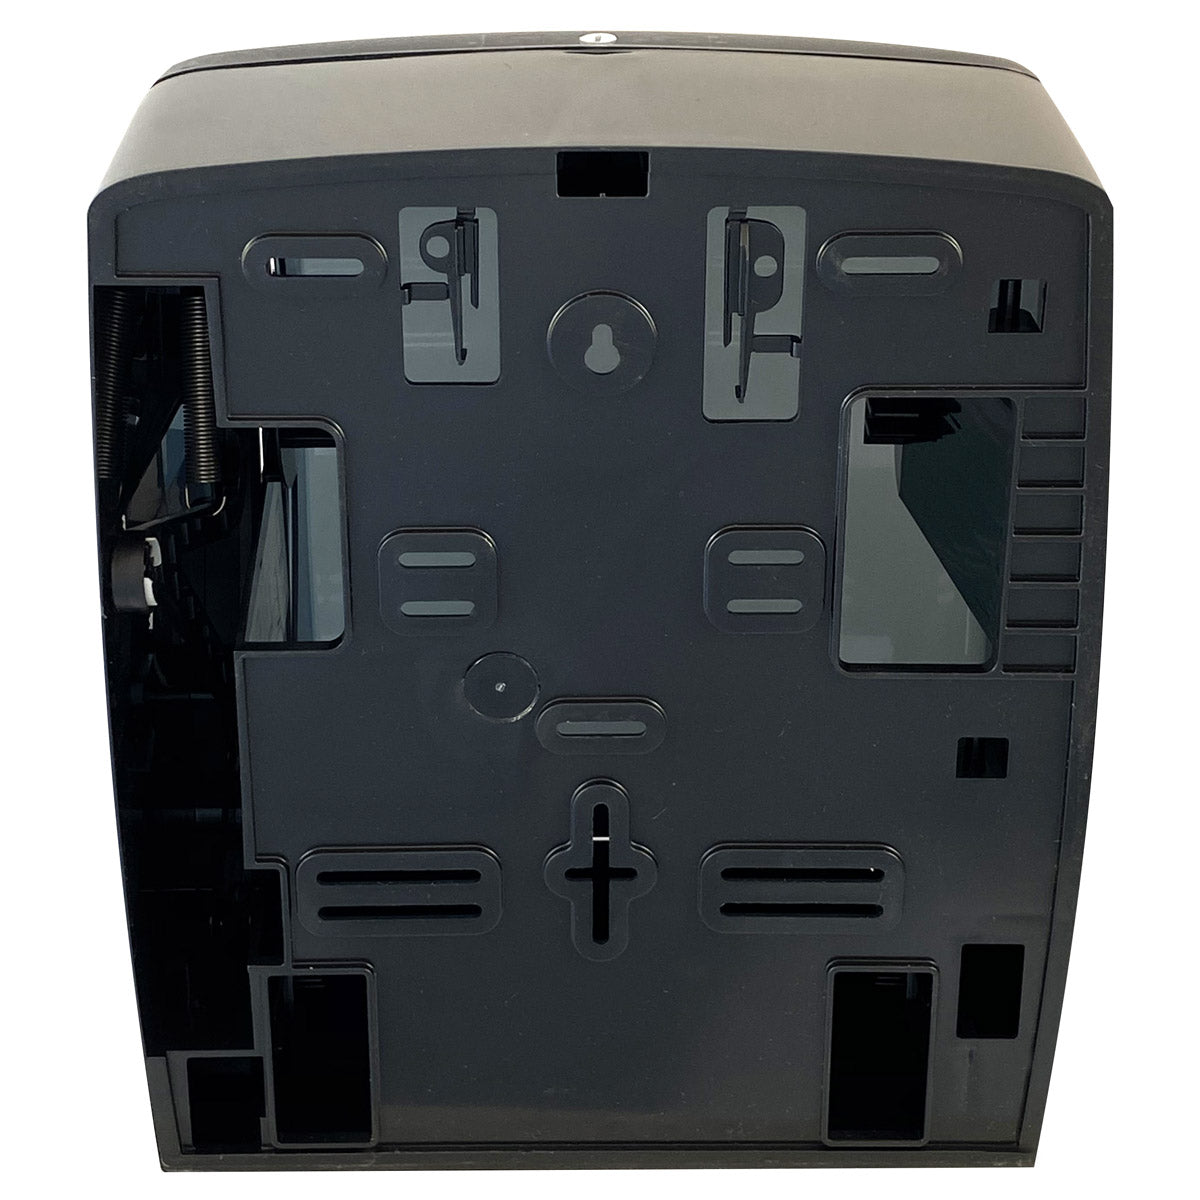 VISTA Lever Roll Towel Dispenser, Black Translucent - PT2003